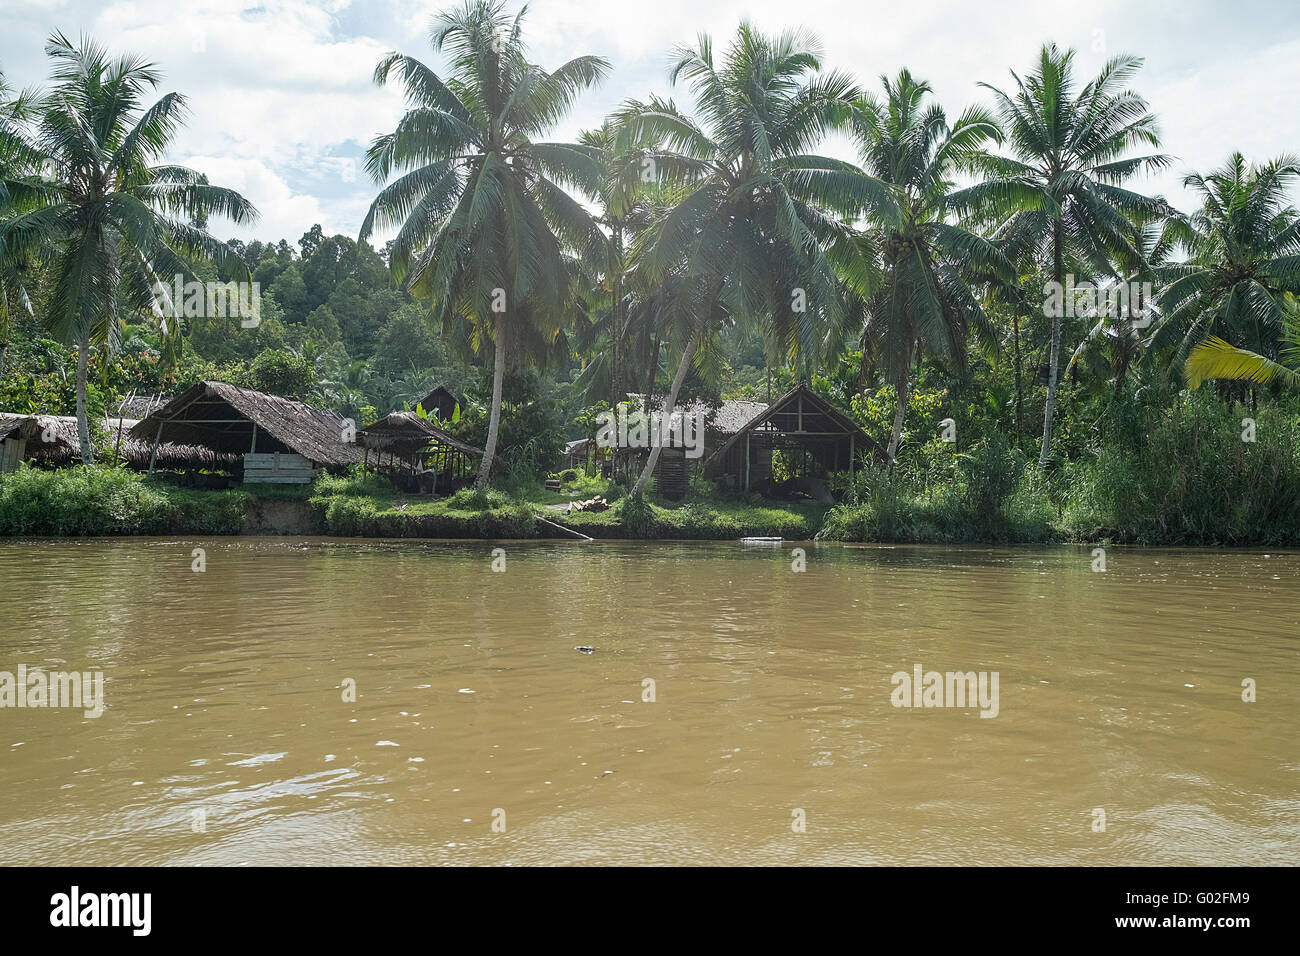 The village and the house of Mentawai tribe. - Stock Image